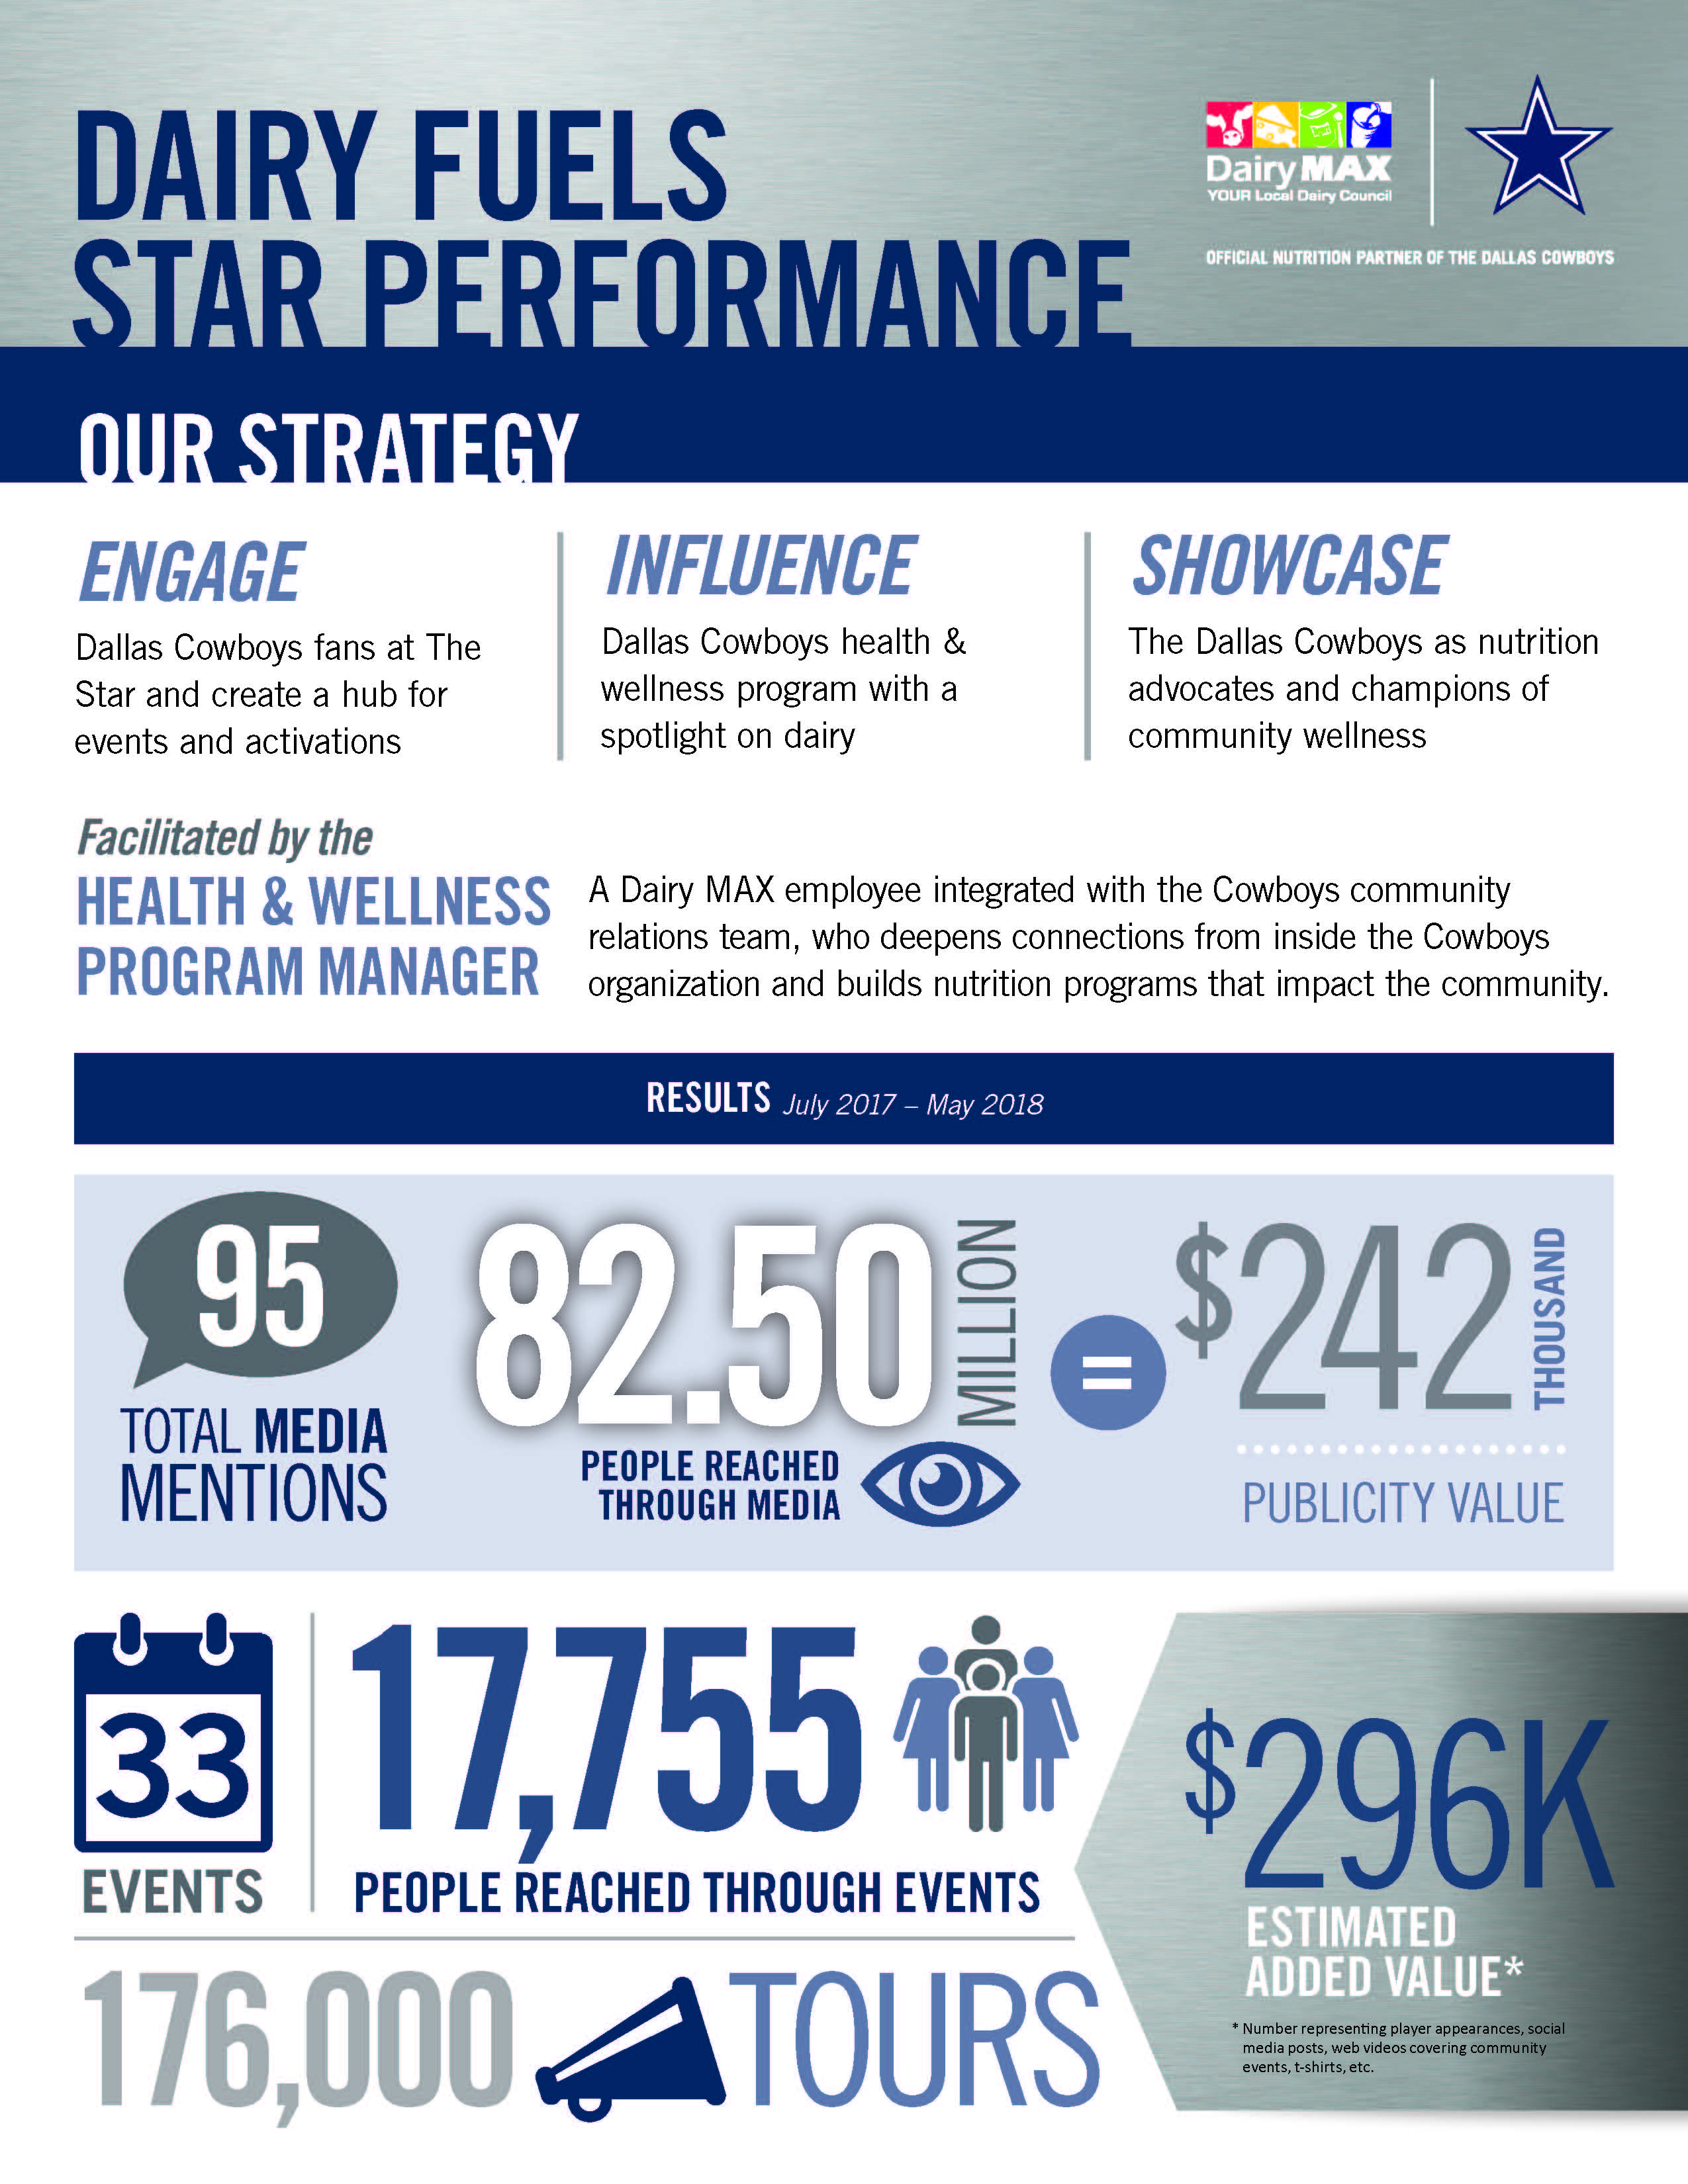 infographic showing the results of Dairy MAX's partnership with the Dallas Cowboys